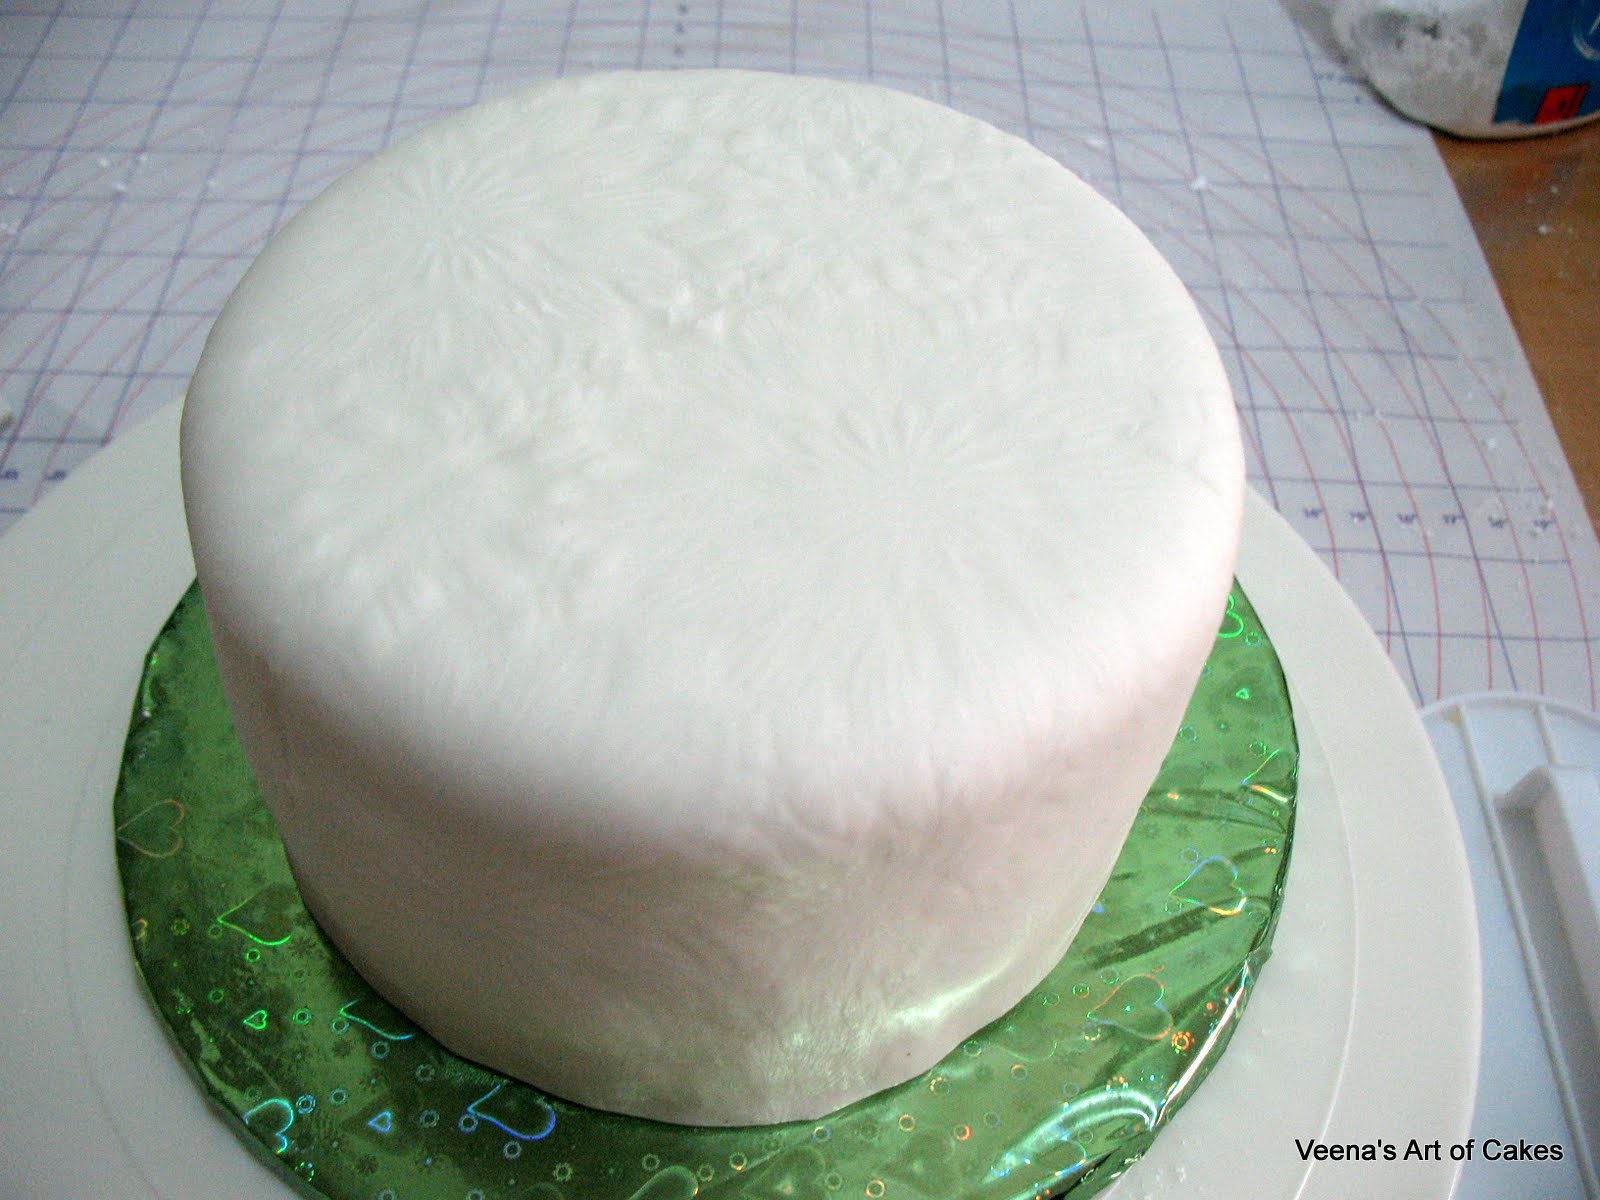 Veena s Art of Cakes: How to make a fondant Gift Box Cake - I